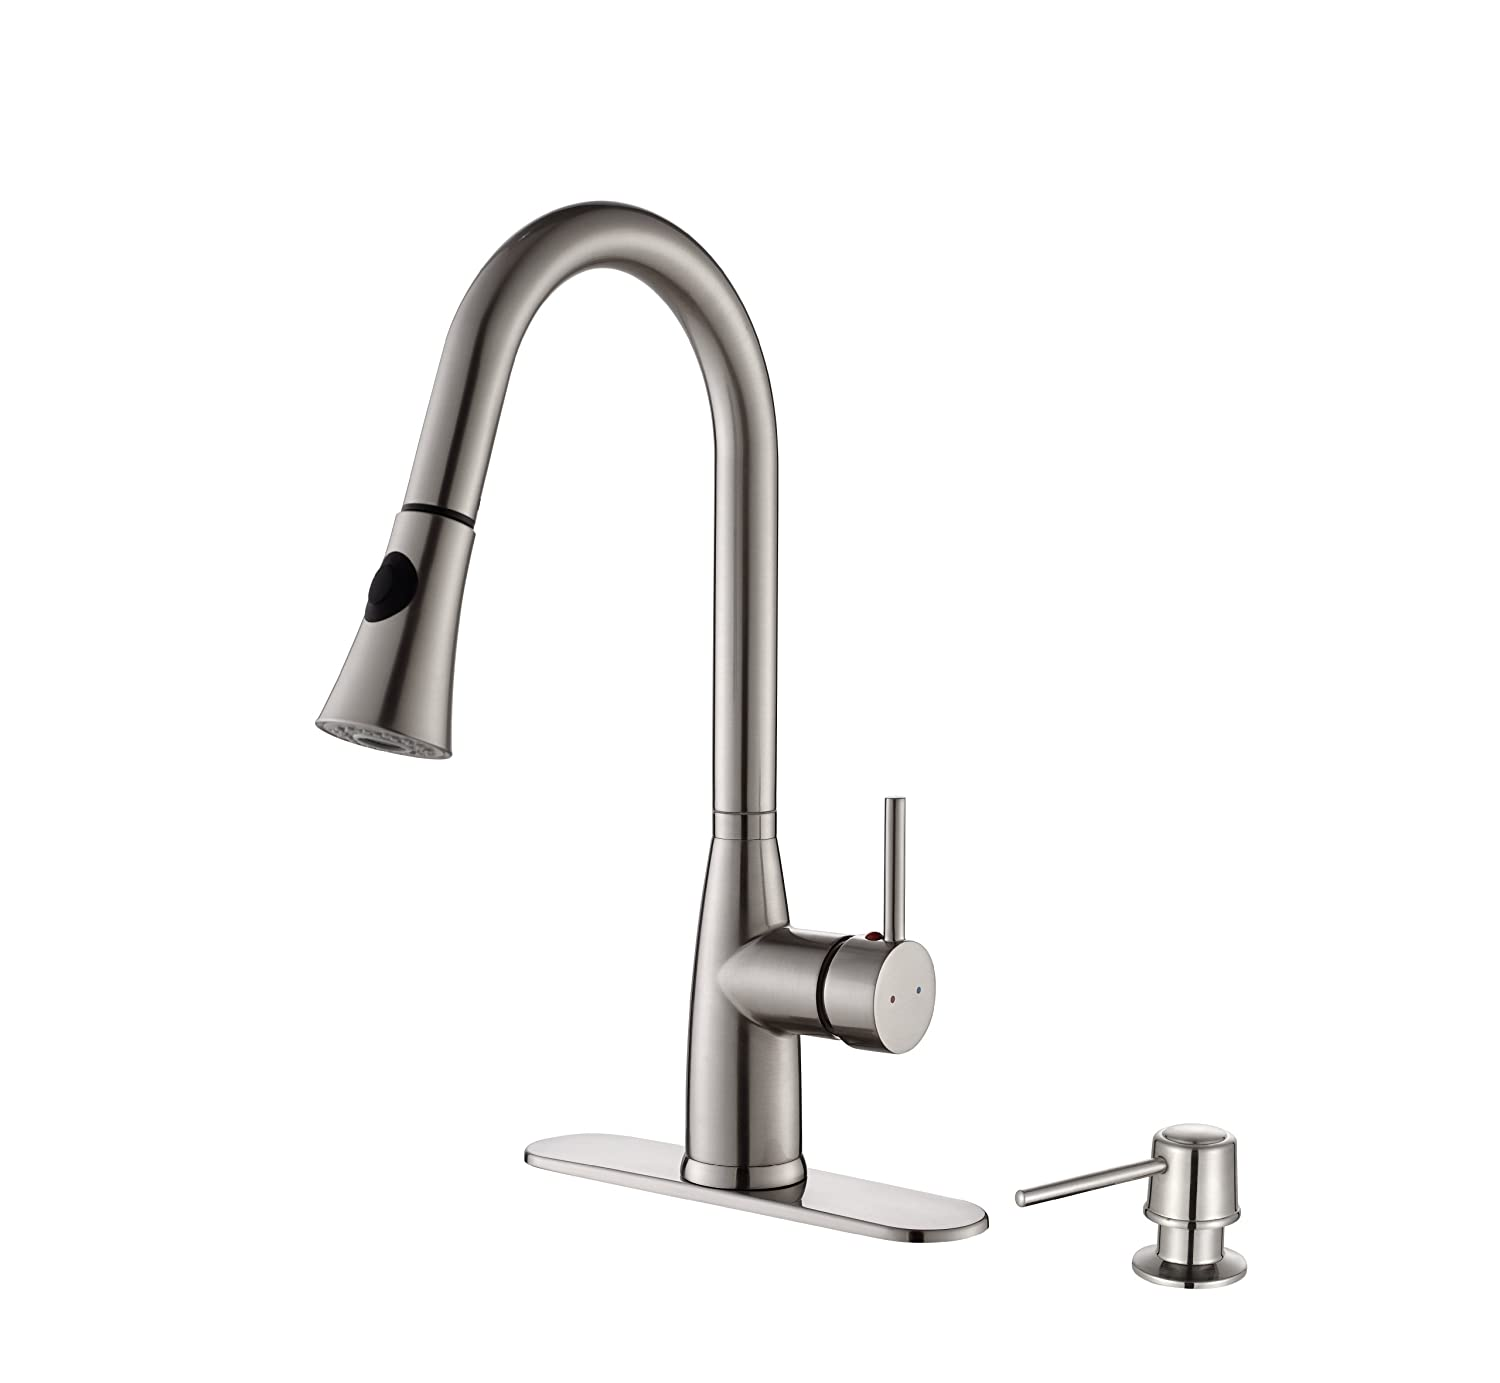 stainless dp modern single sink faucets spouts down mateo kitchen kraus steel canada amazon lever faucet kpf bathtub pull